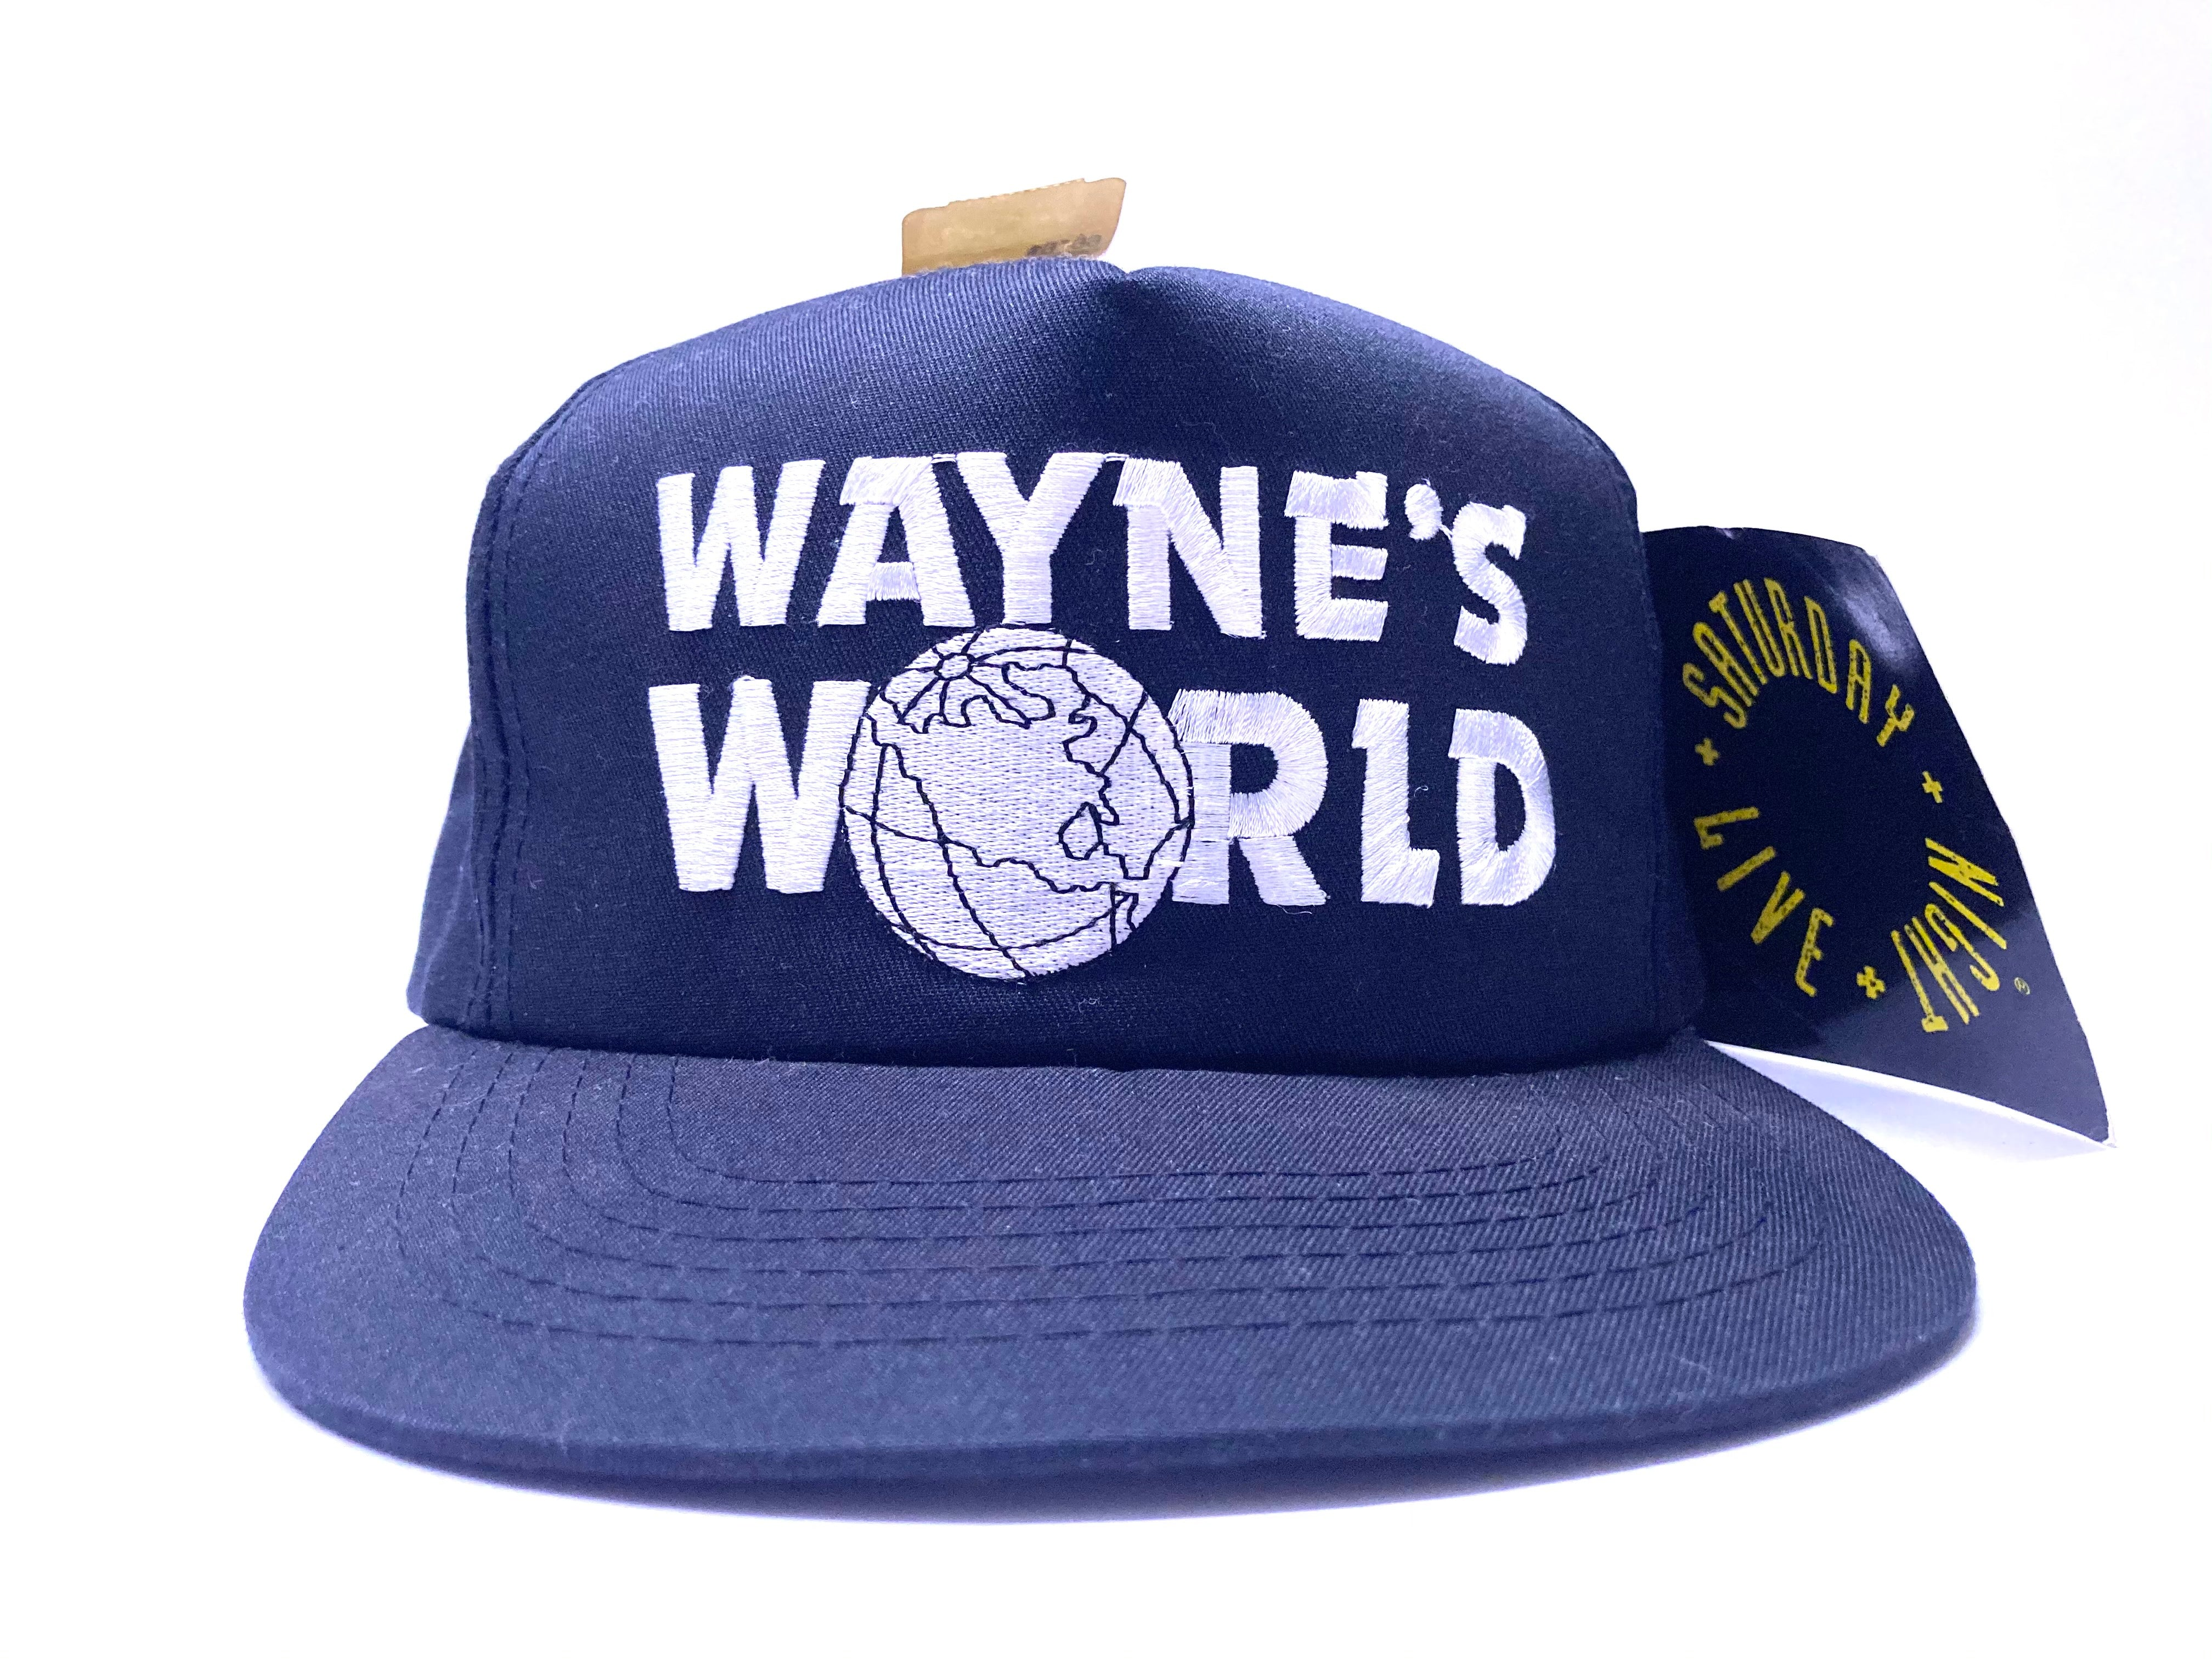 Wayne's World Vintage Snapback By Youngan Brand New